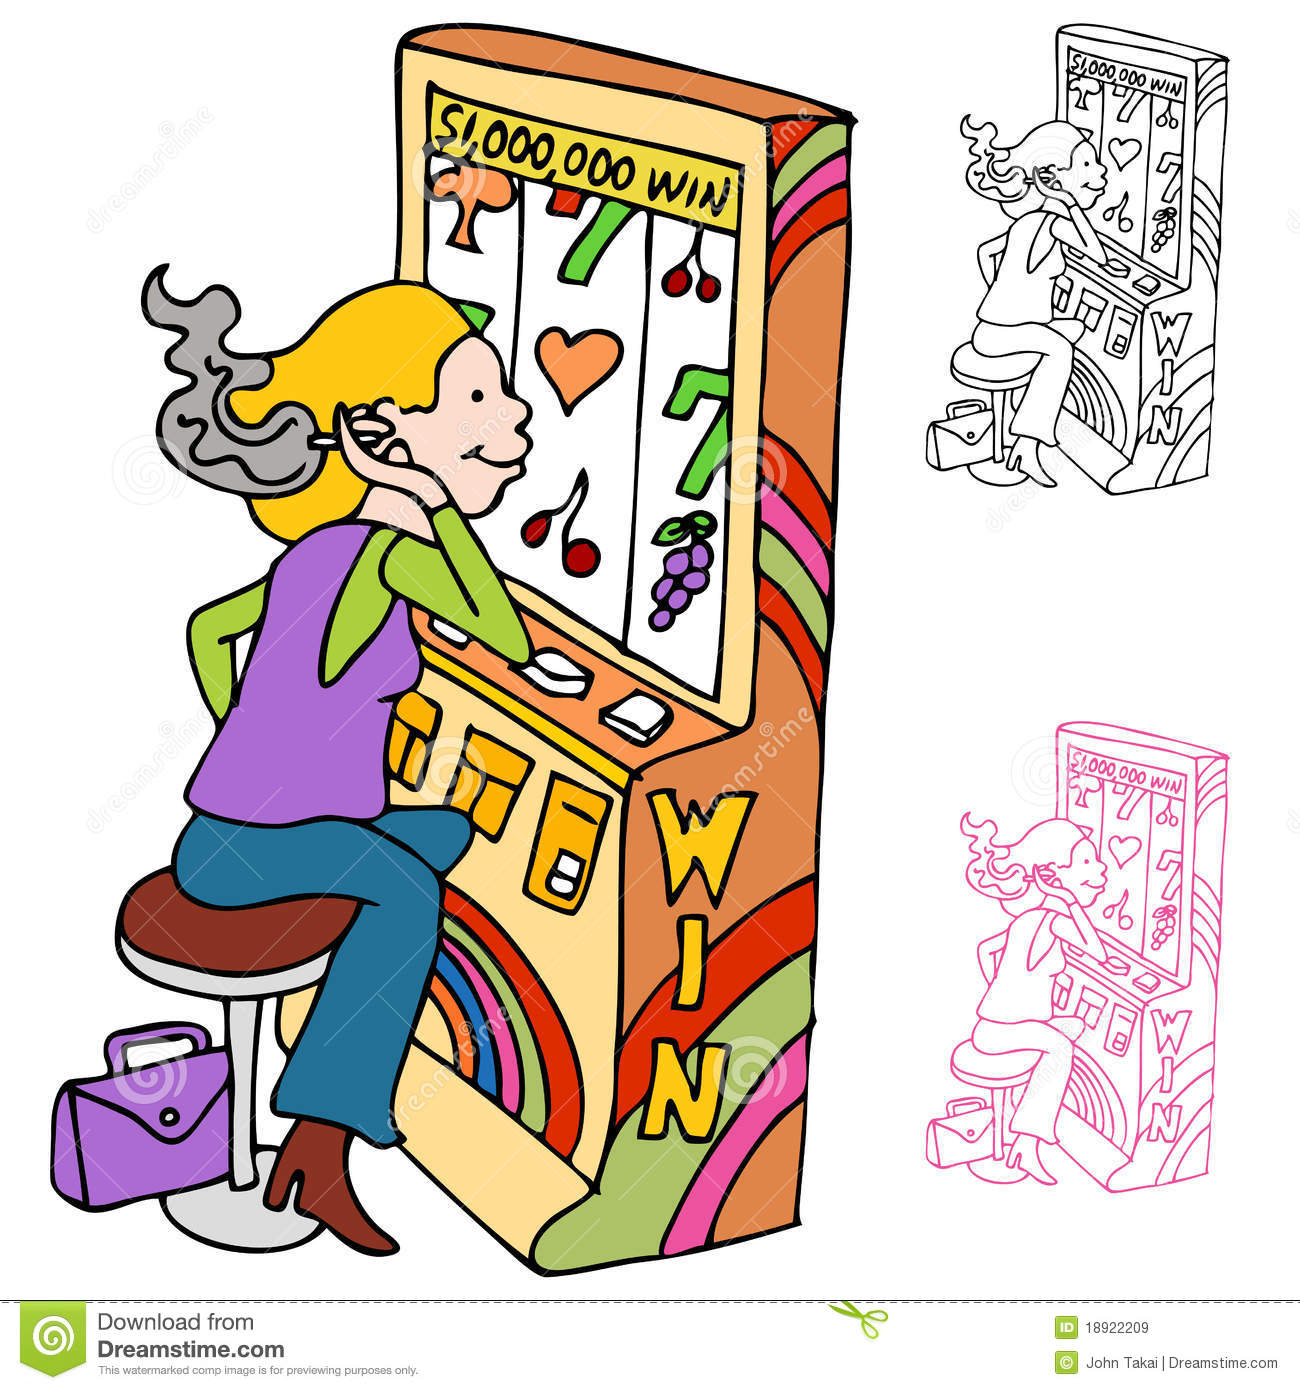 Gokmachine In Engels. Casinos For USA Players. Faymer